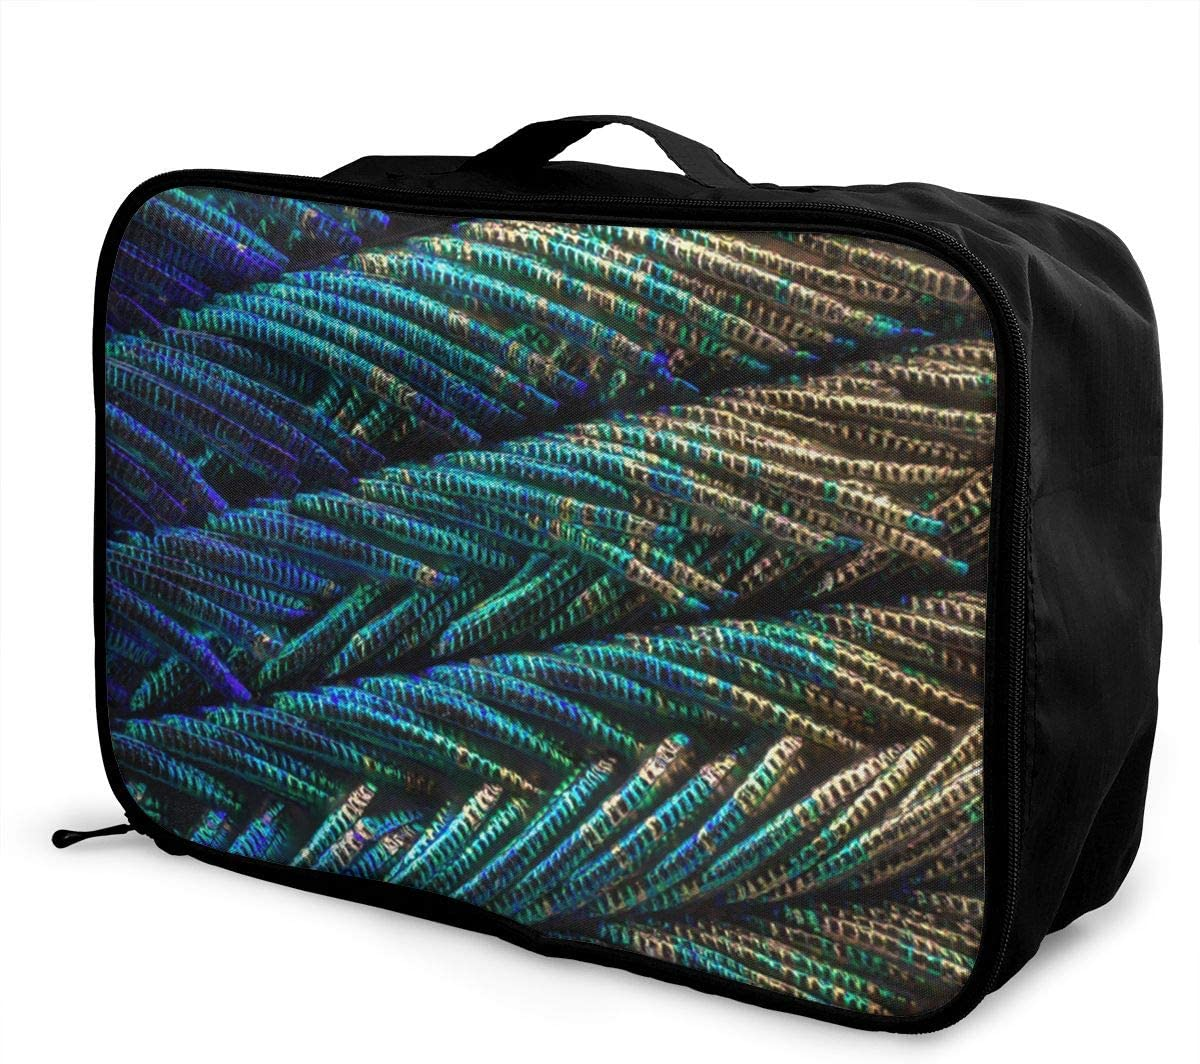 Peacock-feather Travel Carry-on Luggage Weekender Bag Overnight Tote Flight Duffel In Trolley Handle